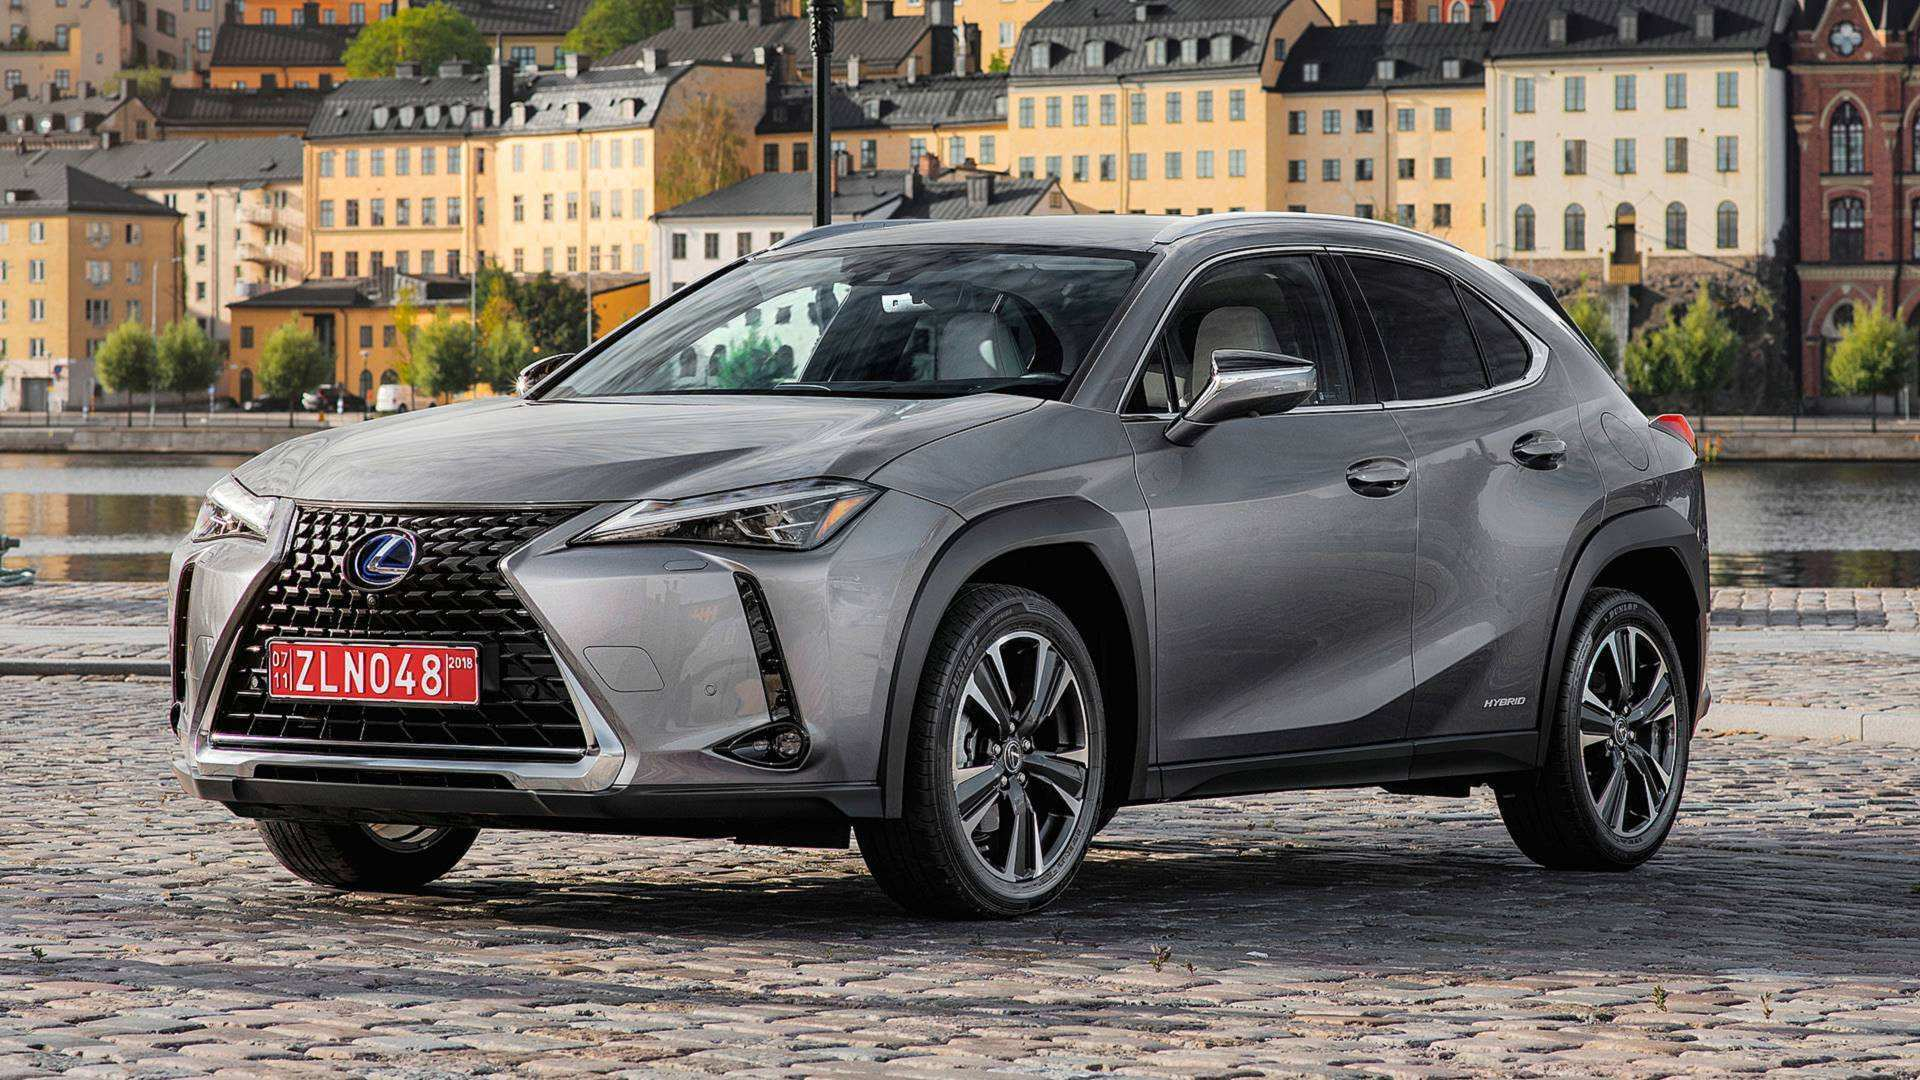 89 Great 2019 Lexus Hatchback Redesign with 2019 Lexus Hatchback